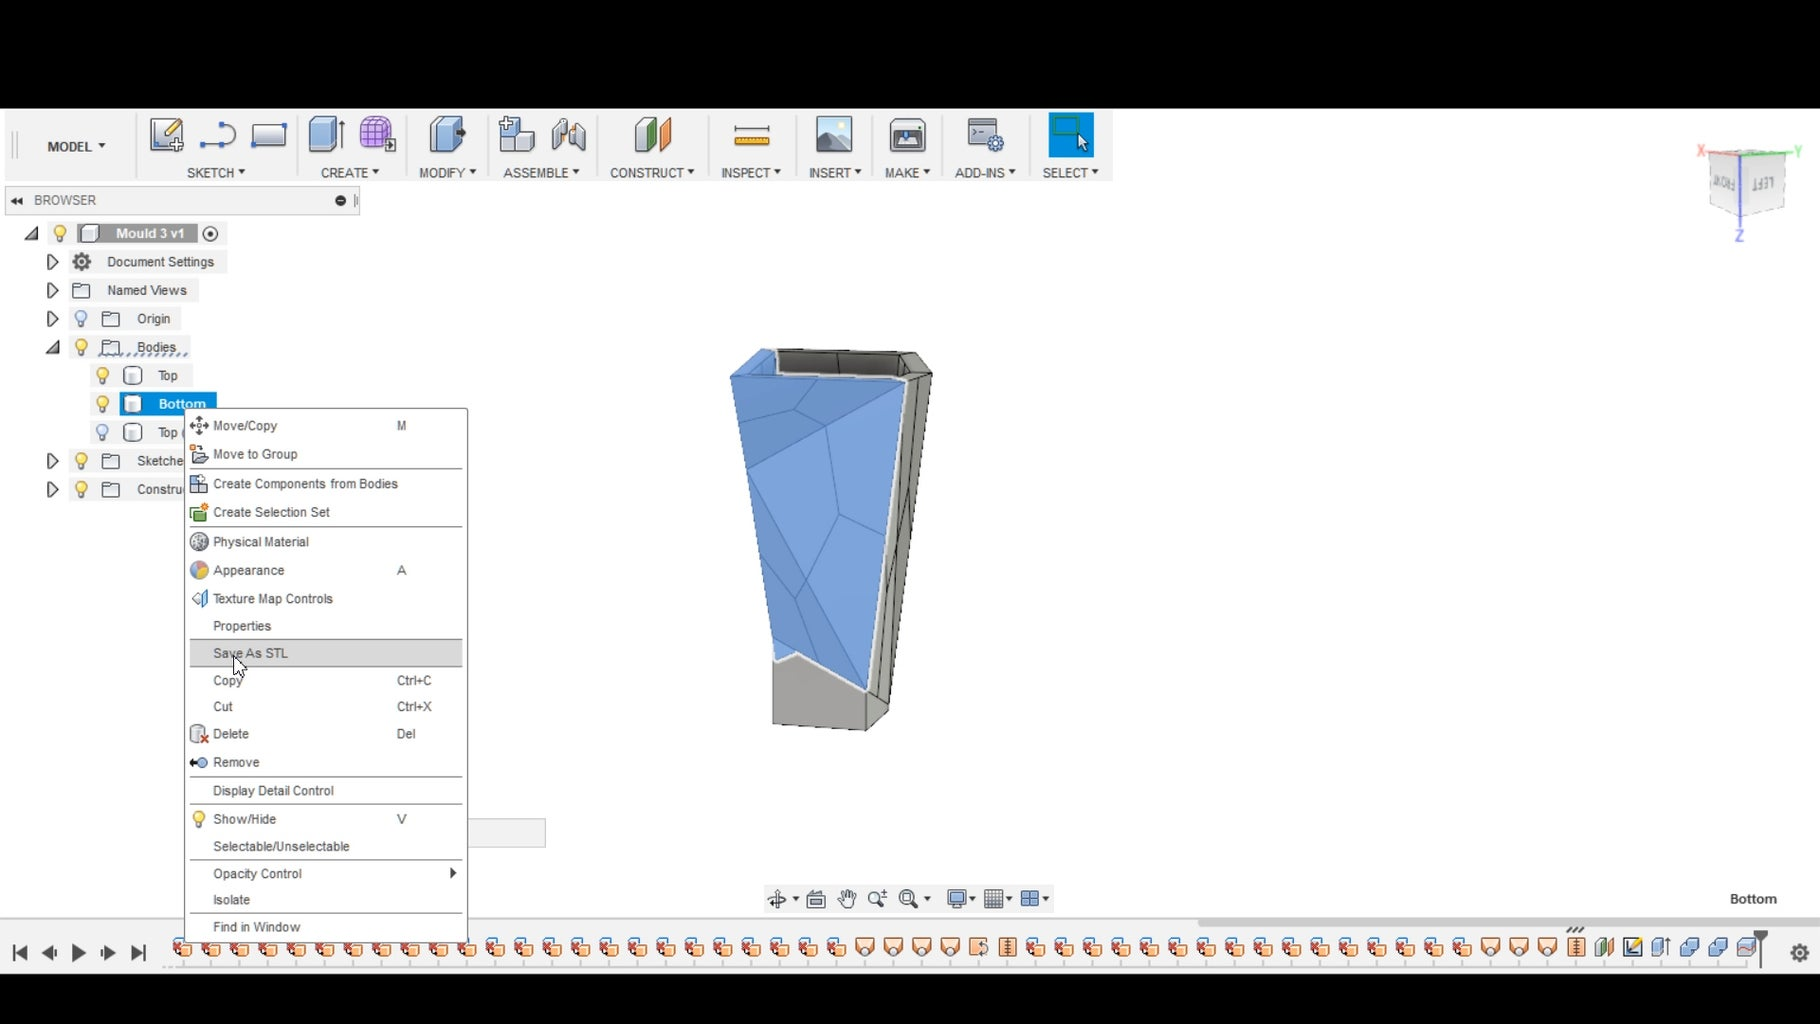 DESIGNING THE PRODUCT AND MOULD